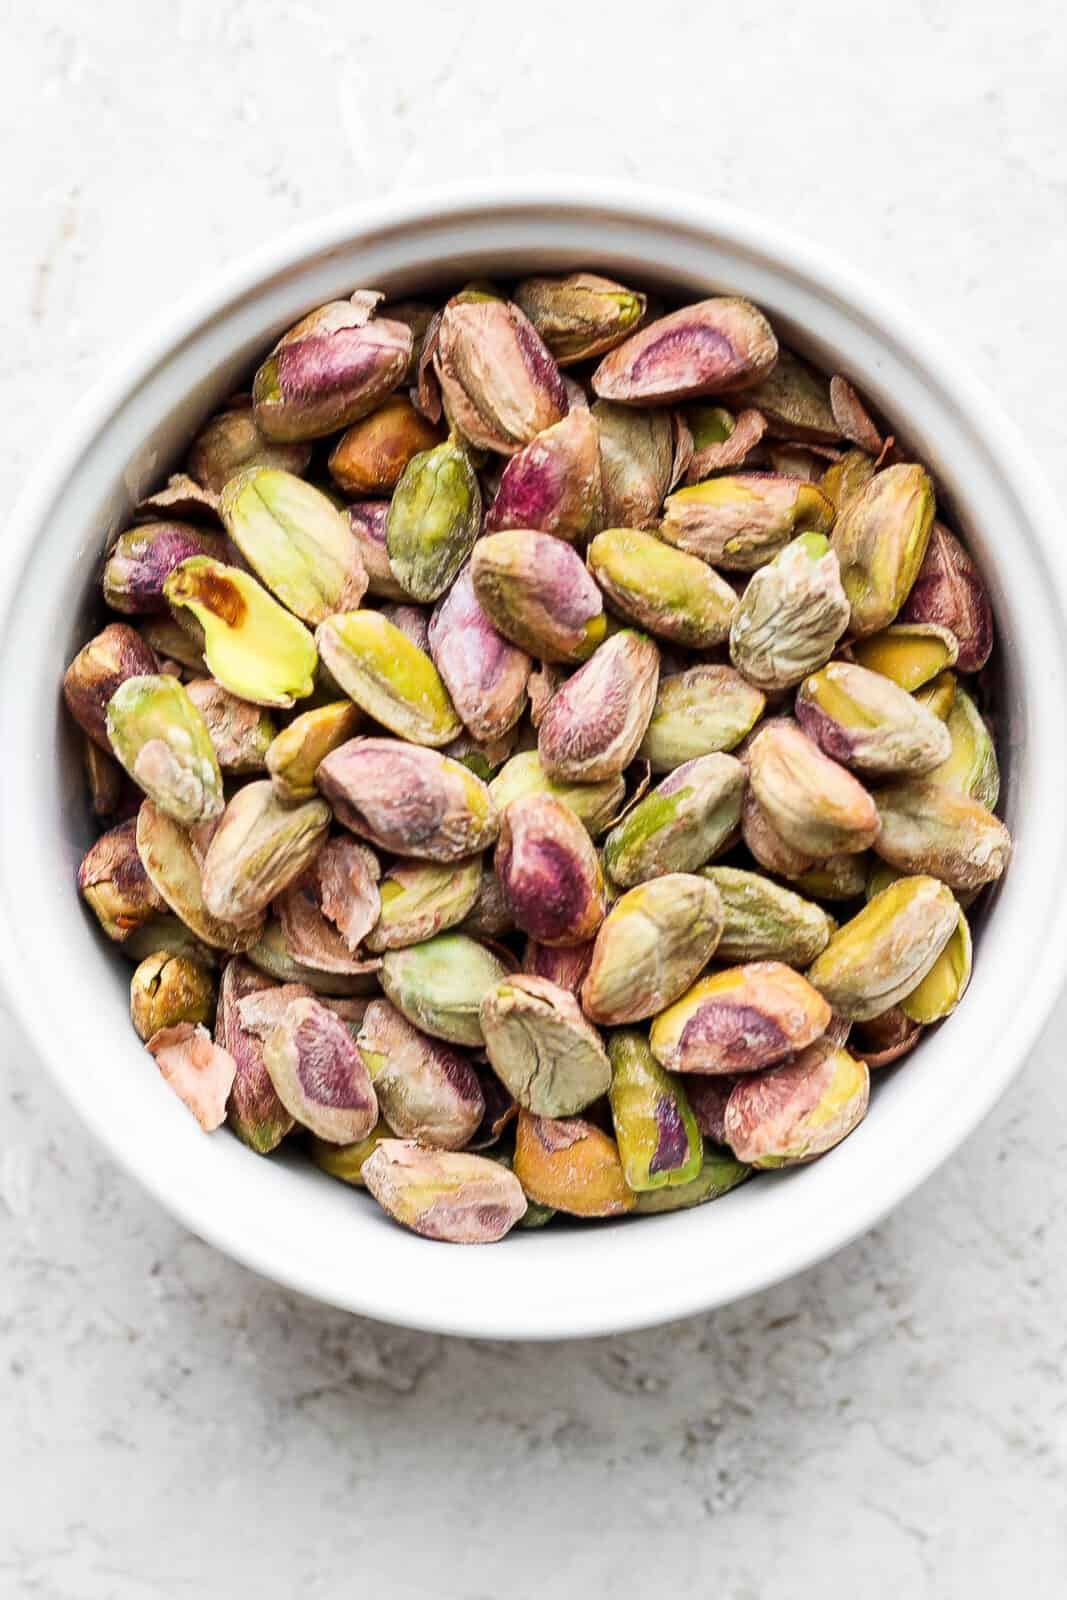 Shelled pistachios in a bowl.